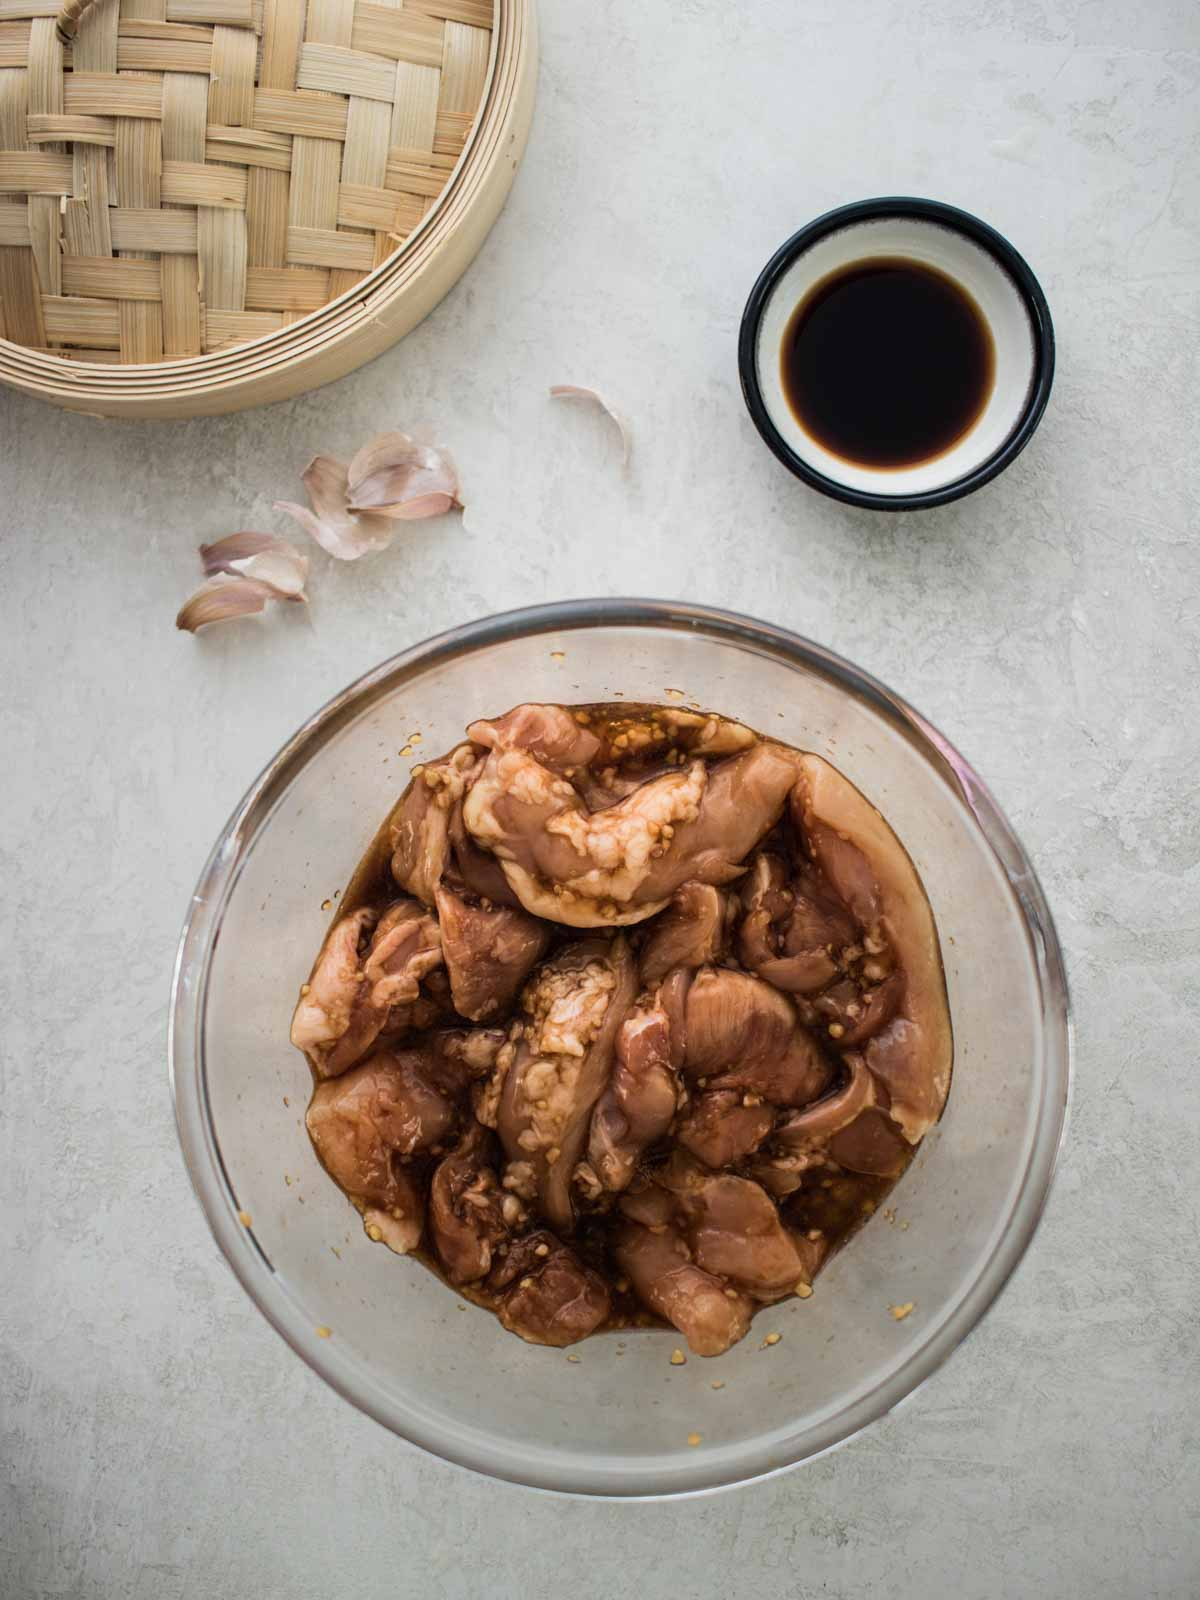 Chicken marinating in a bowl